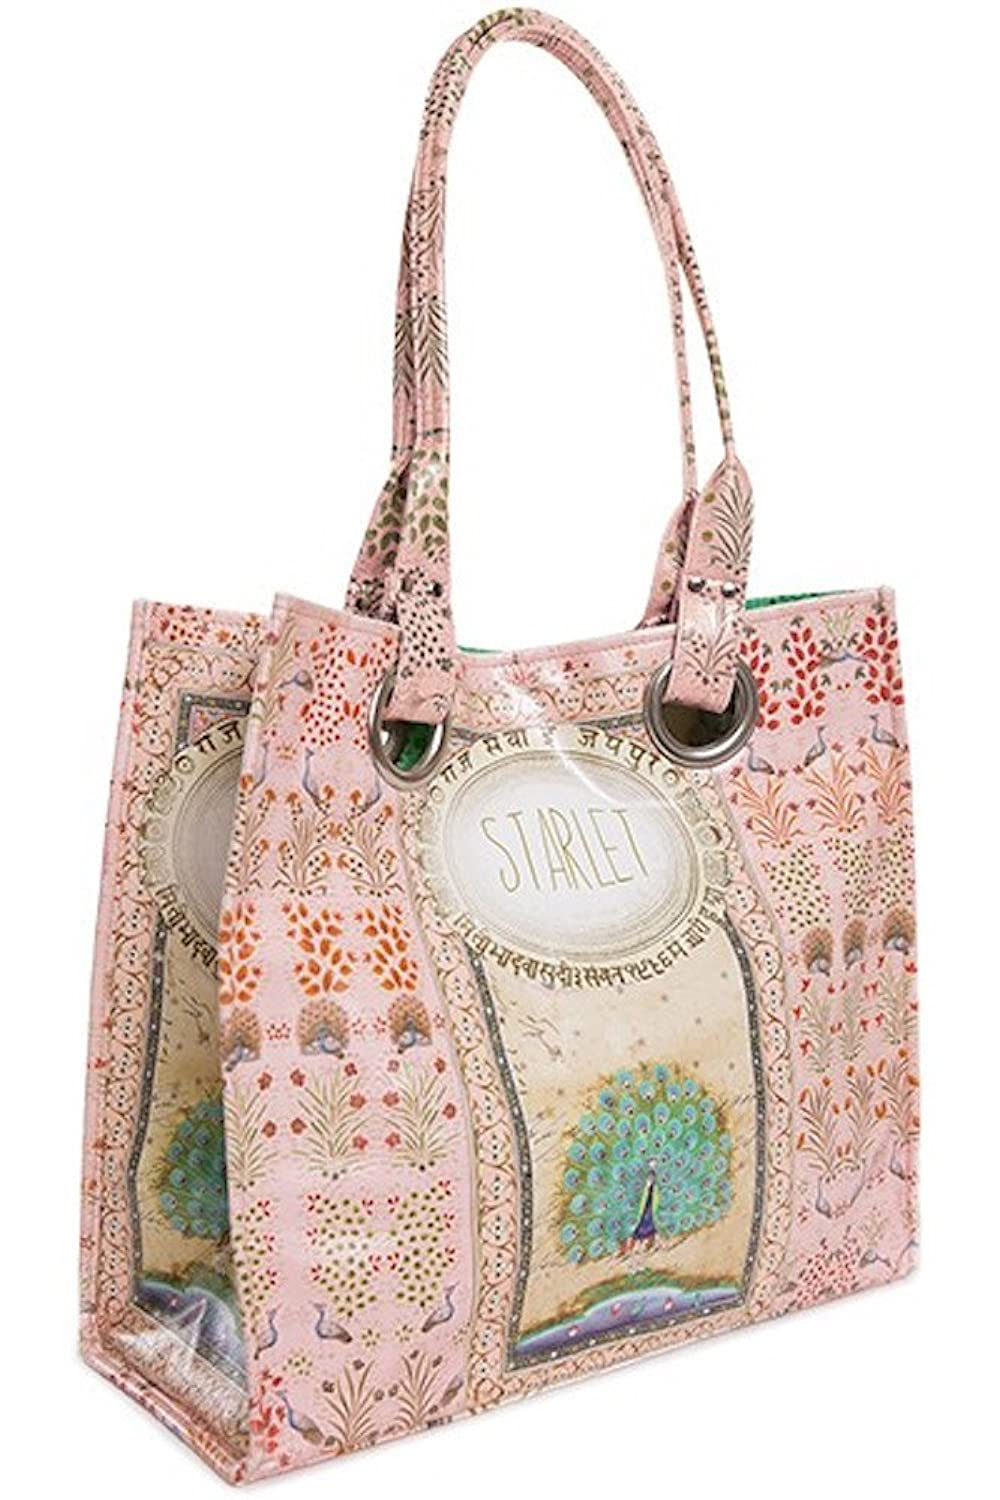 Papaya Art Starlet Luxe Tote Bag